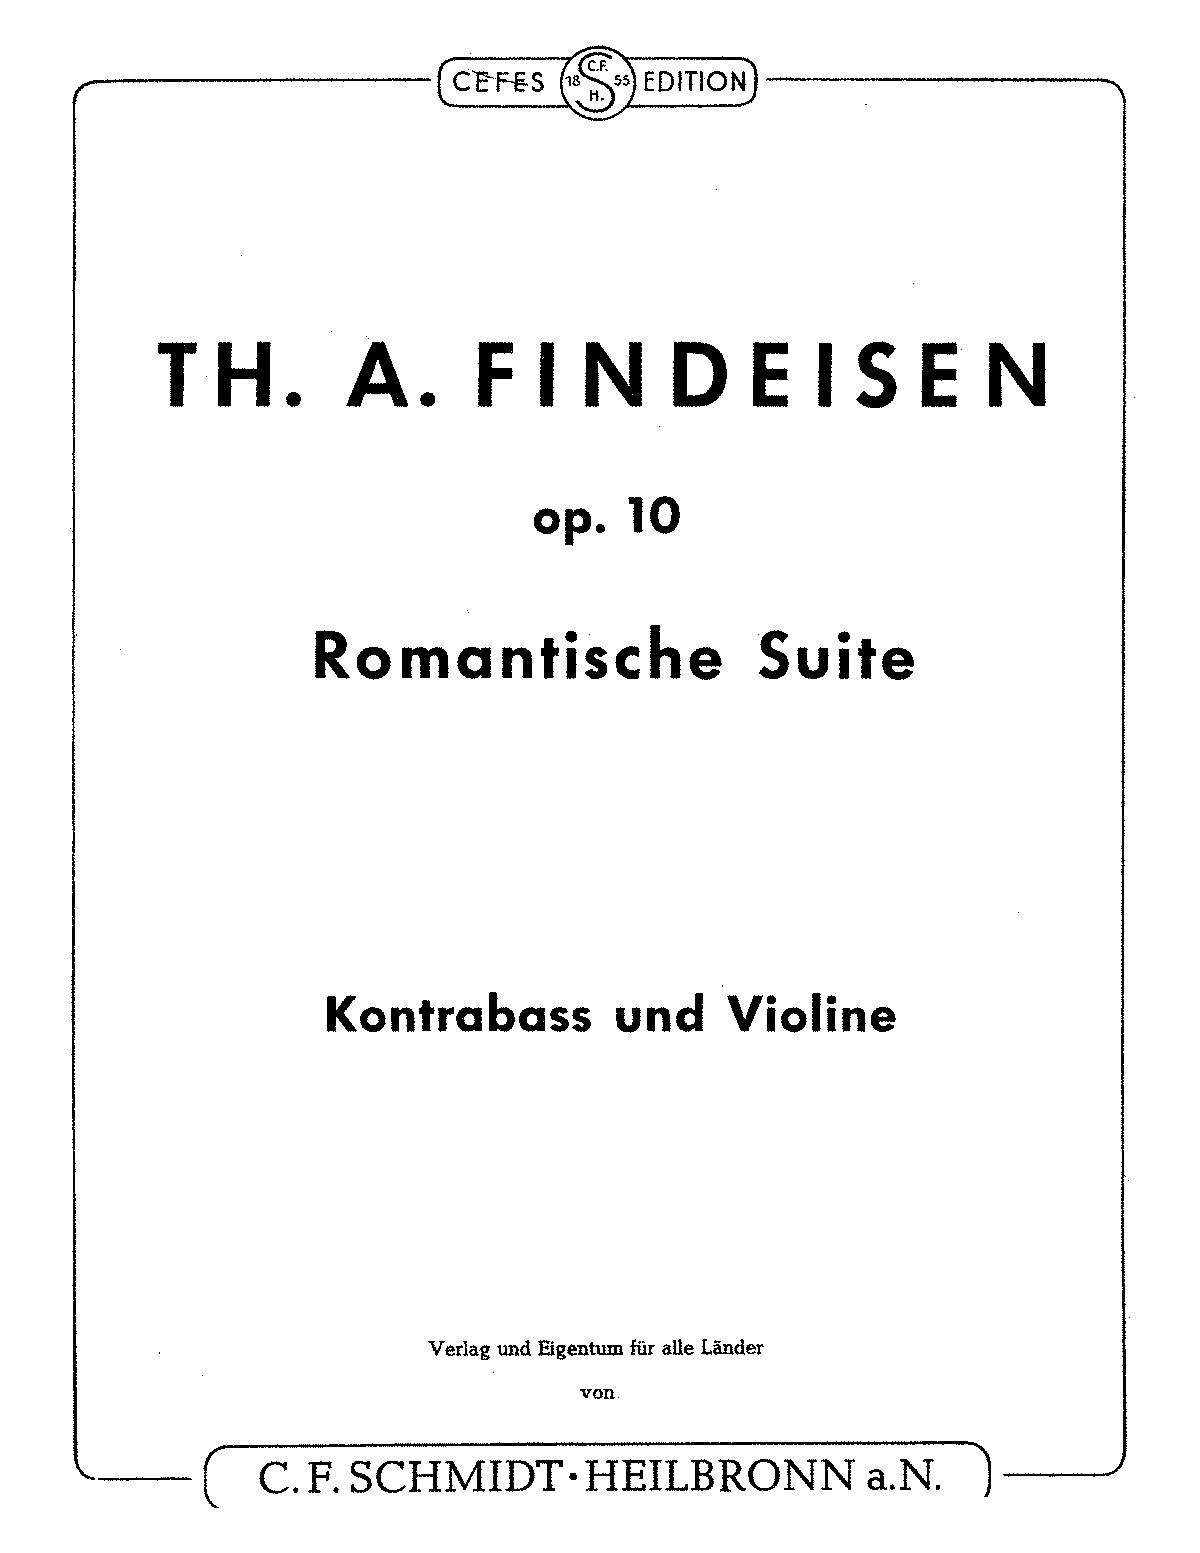 PMLP428971-Findeisen Romantic Suite.pdf